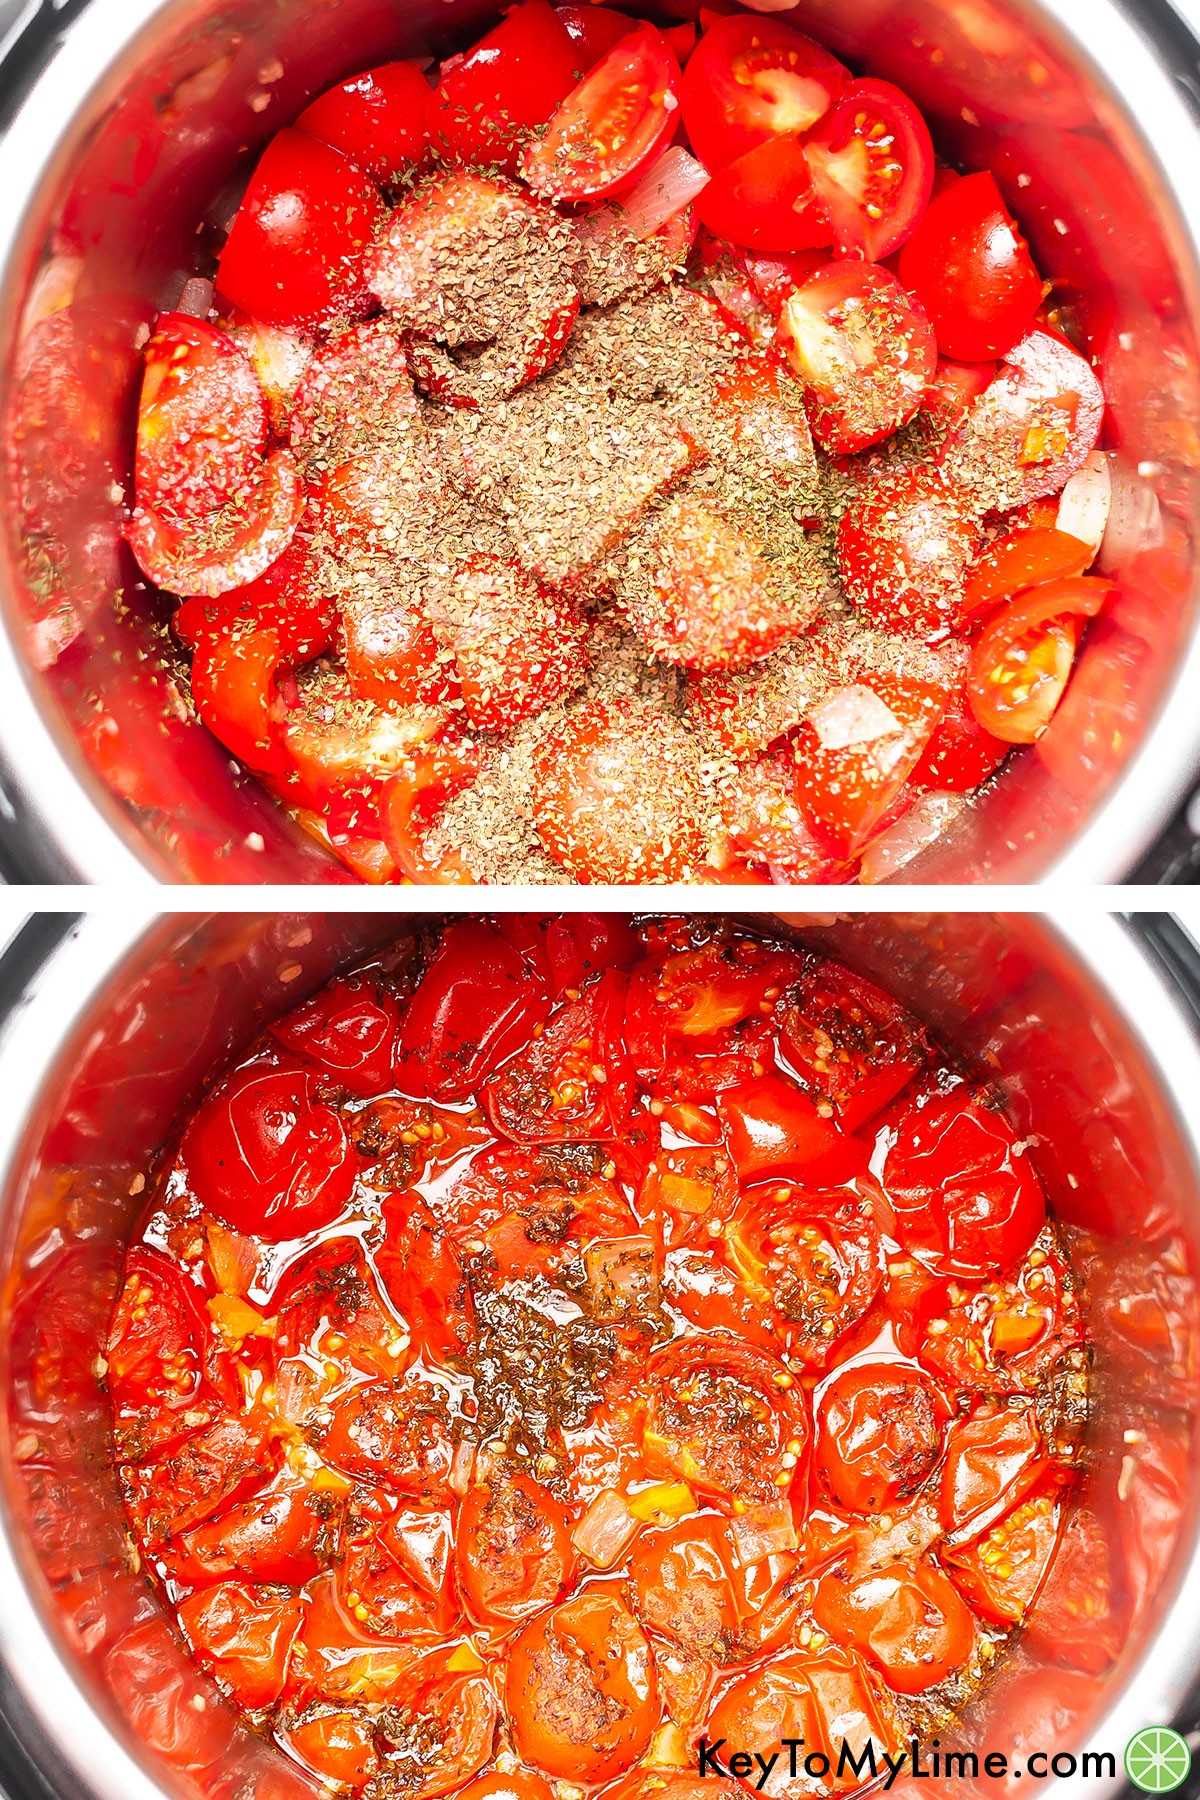 A process collage showing tomatoes with herbs before and after cooking in the Instant Pot.